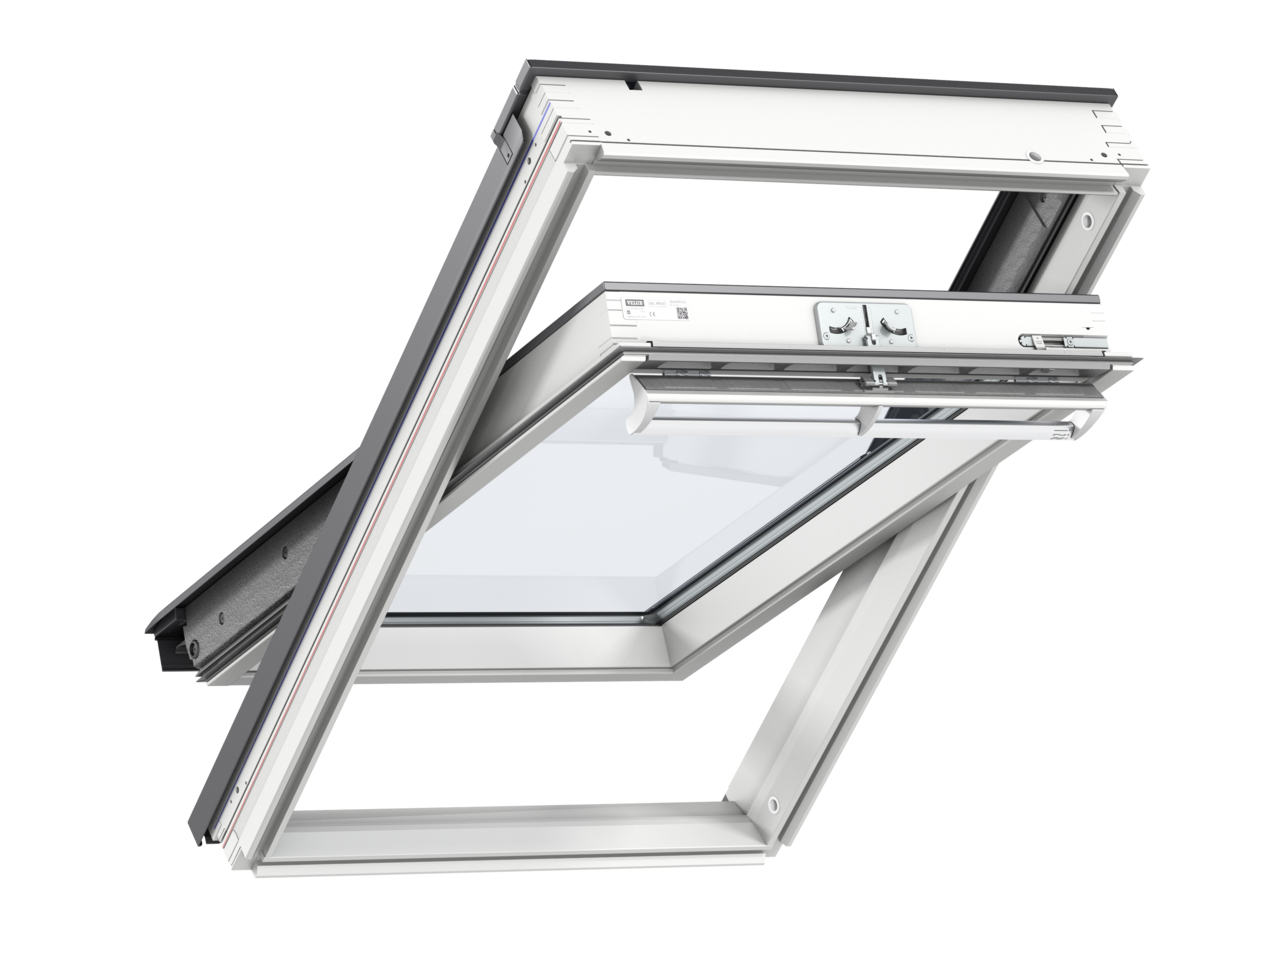 Velux GGL SK06 1140 x 1180mm Centre Pivot 66 Pane Roof Window - White Painted